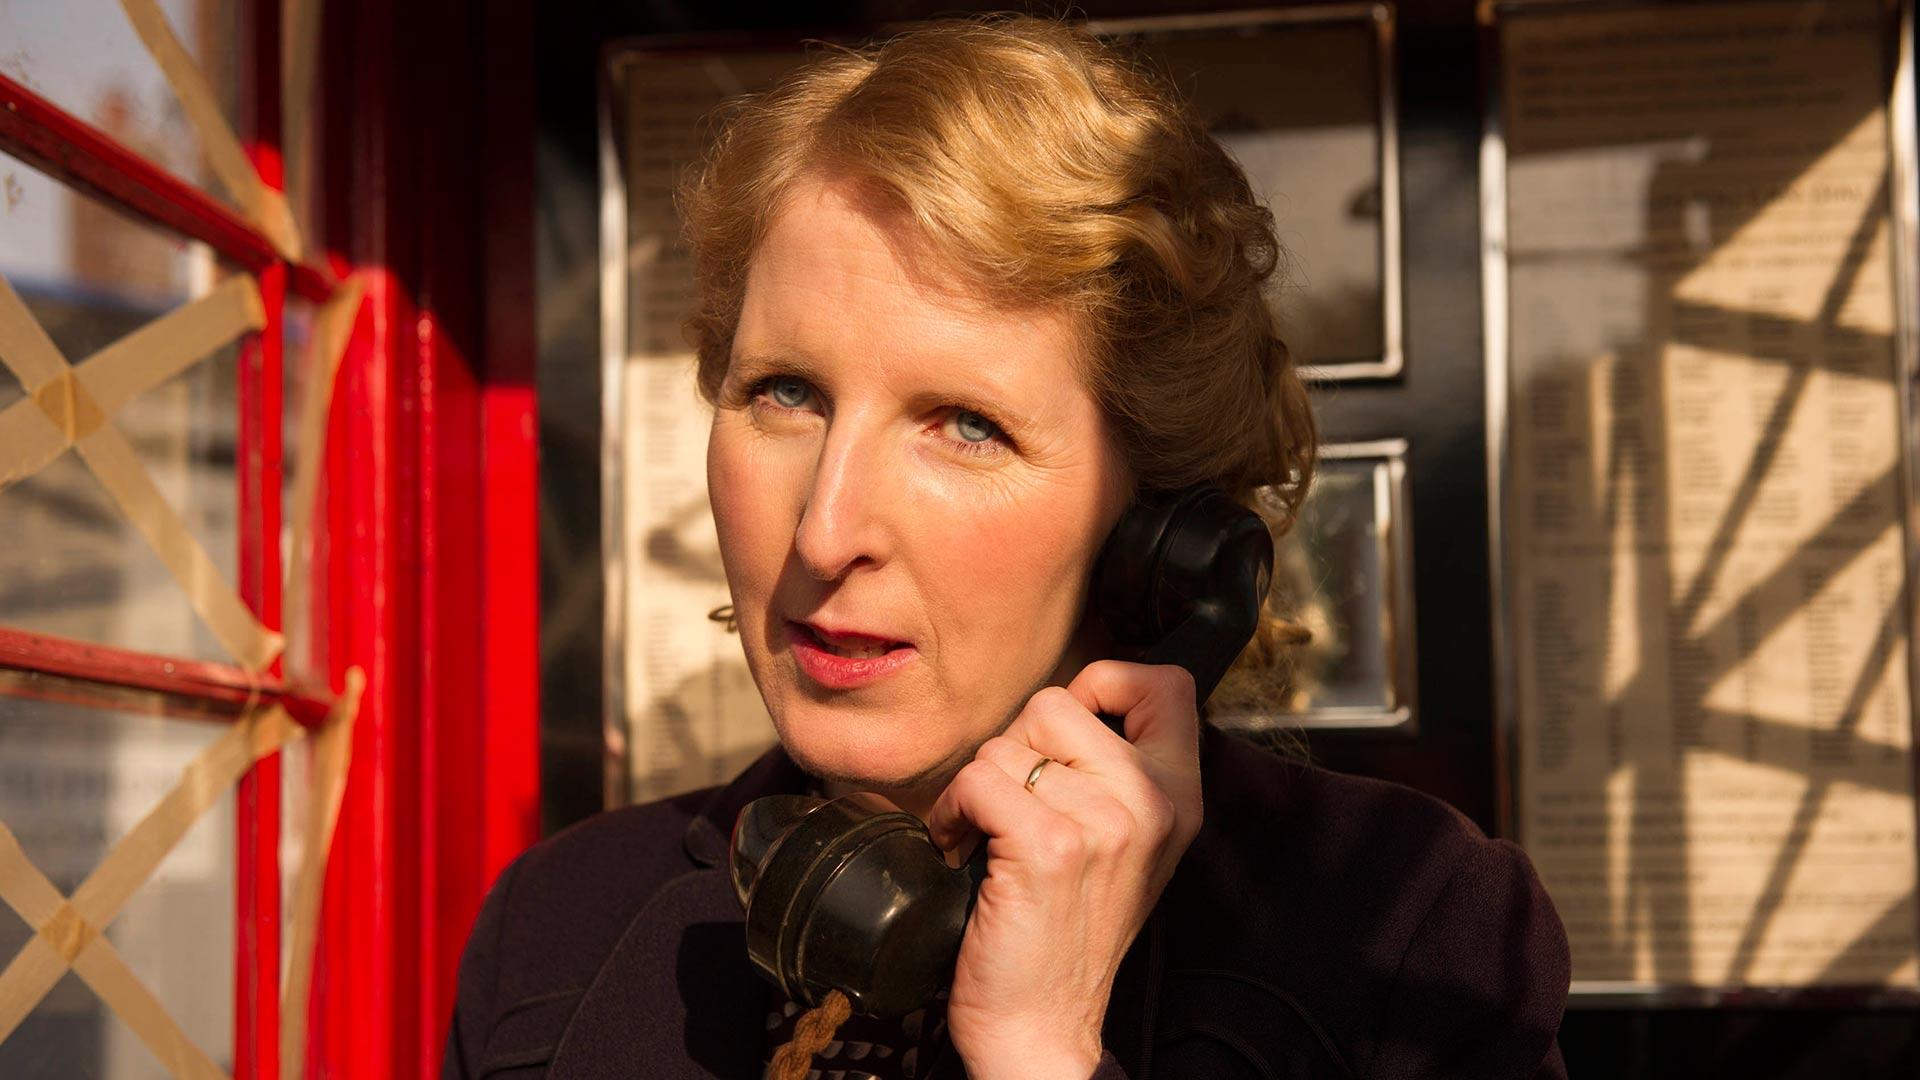 Shown: Fenella Woolgar as Alison Scotlock